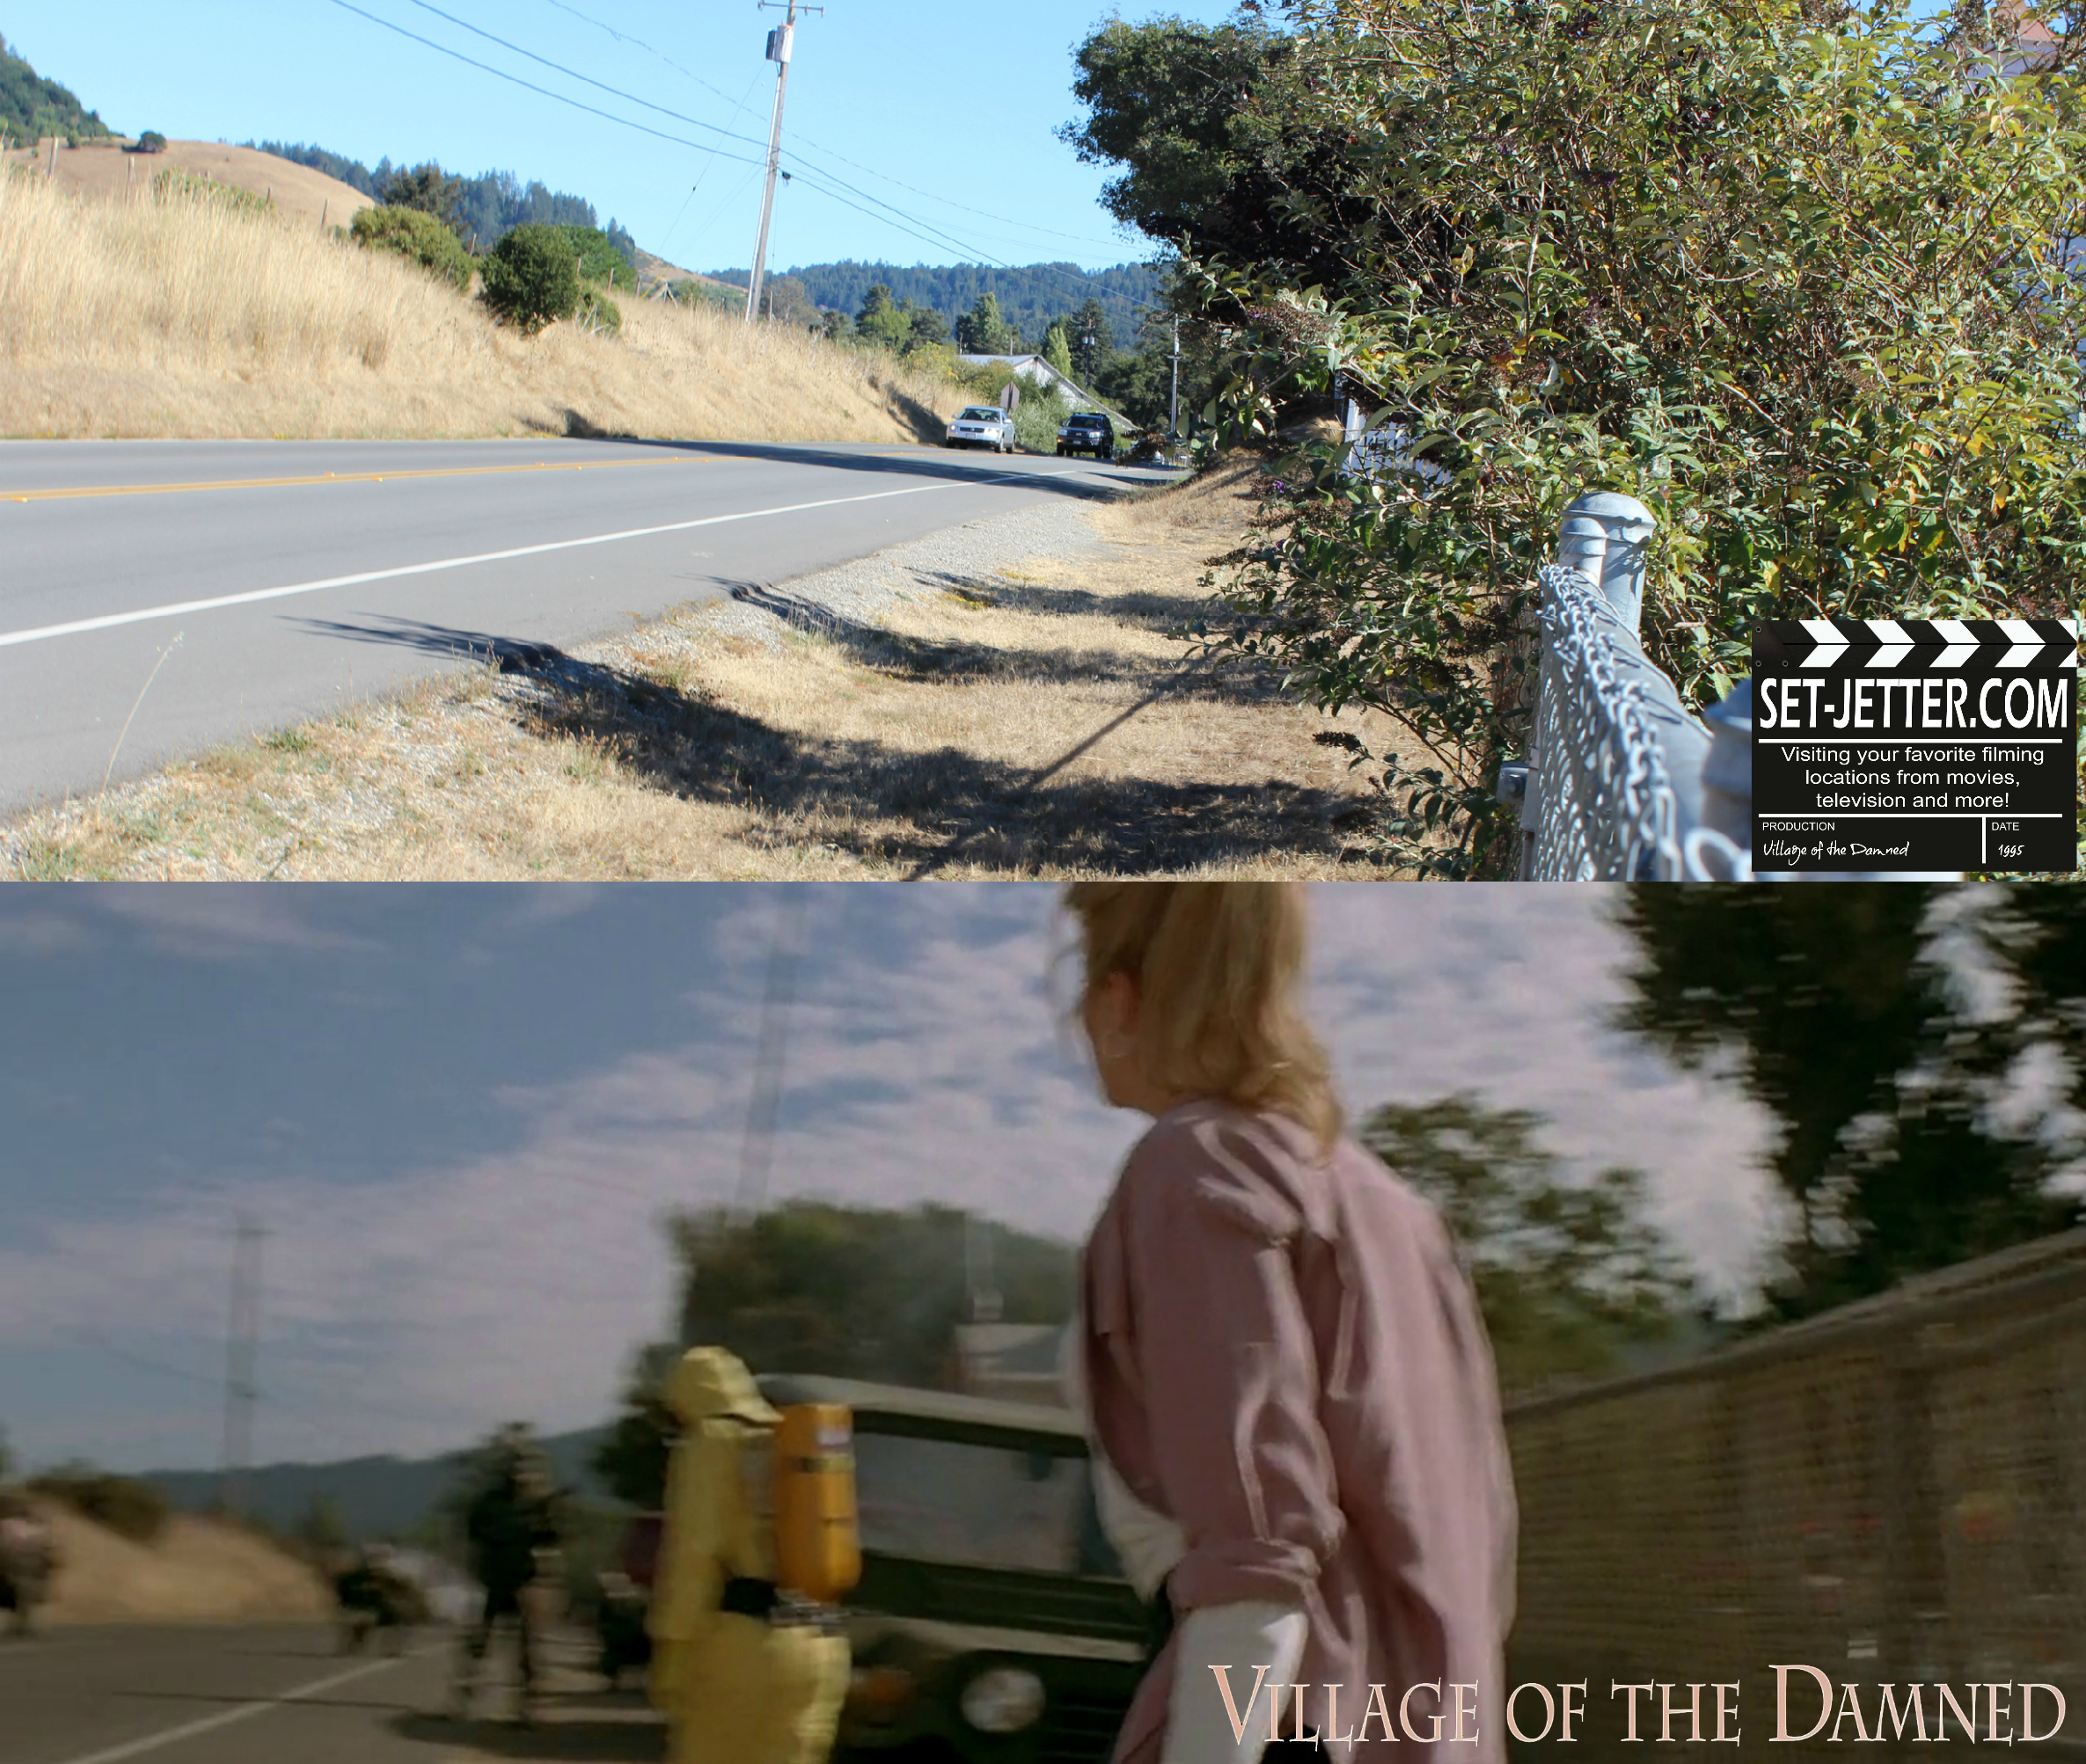 Village of the Damned comparison 26.jpg